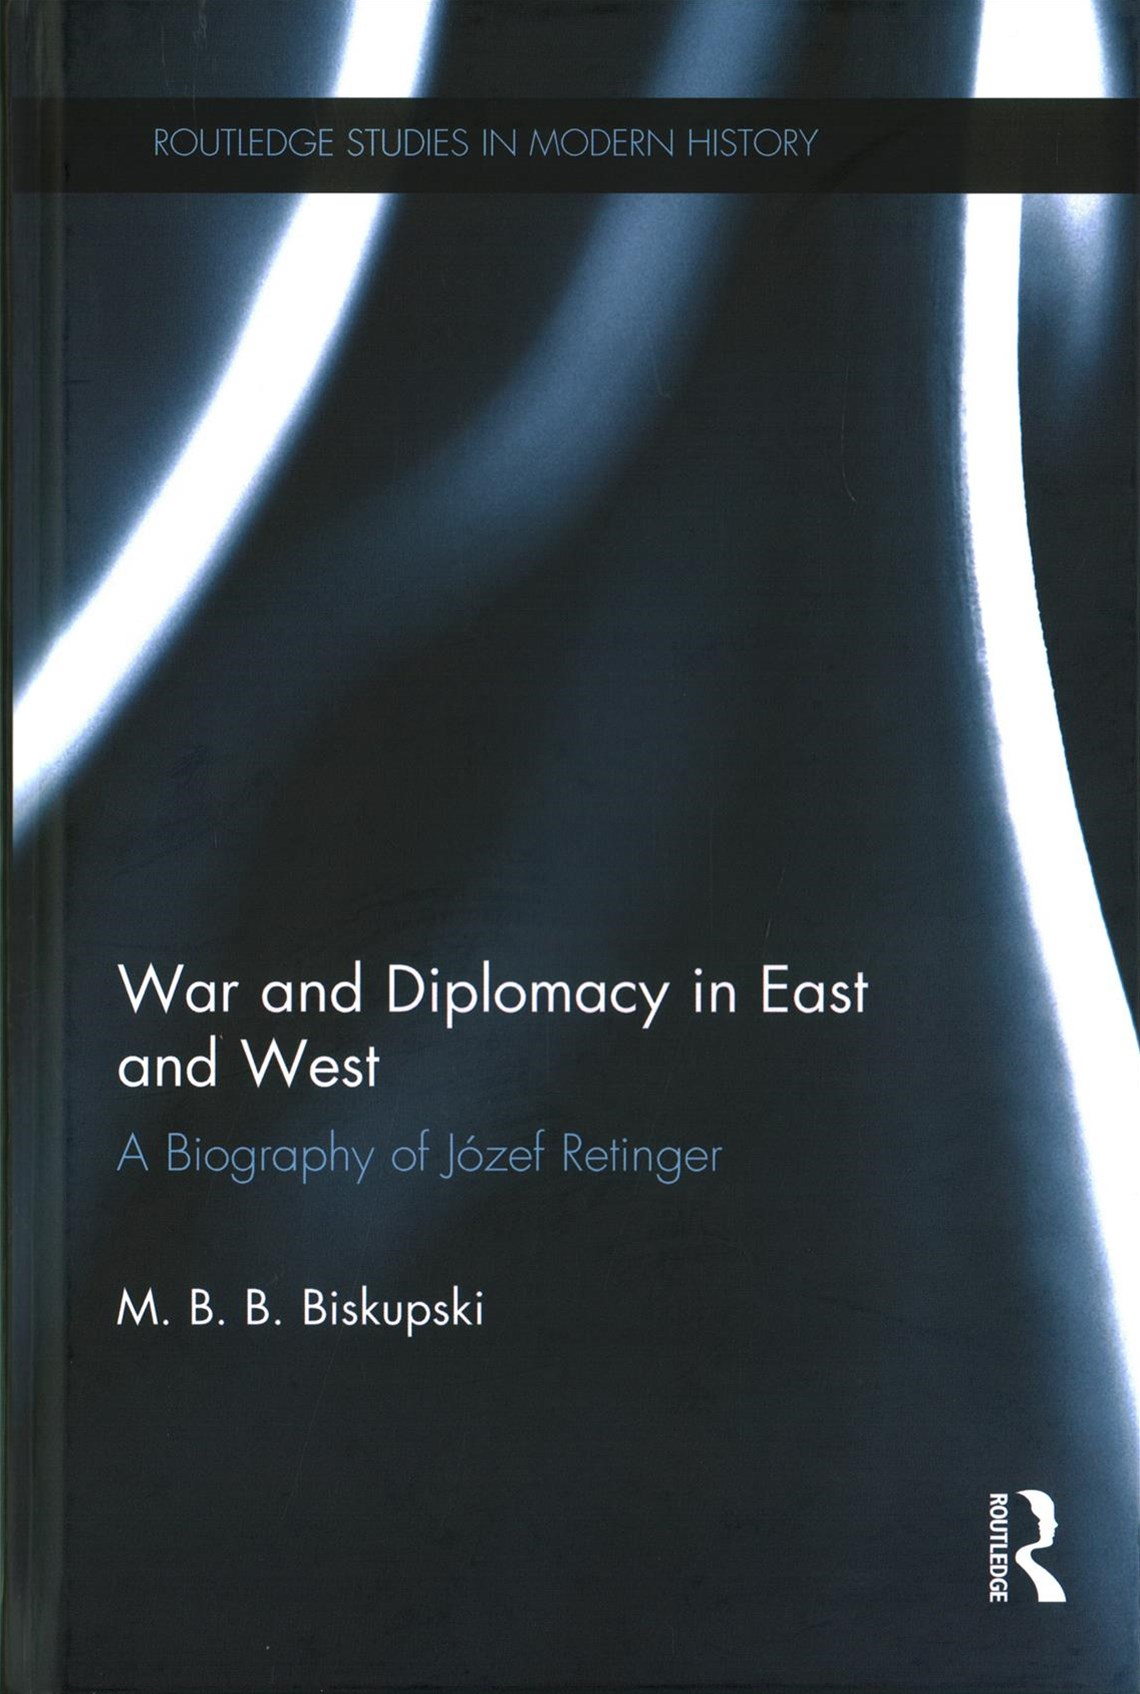 War and Diplomacy in East and West